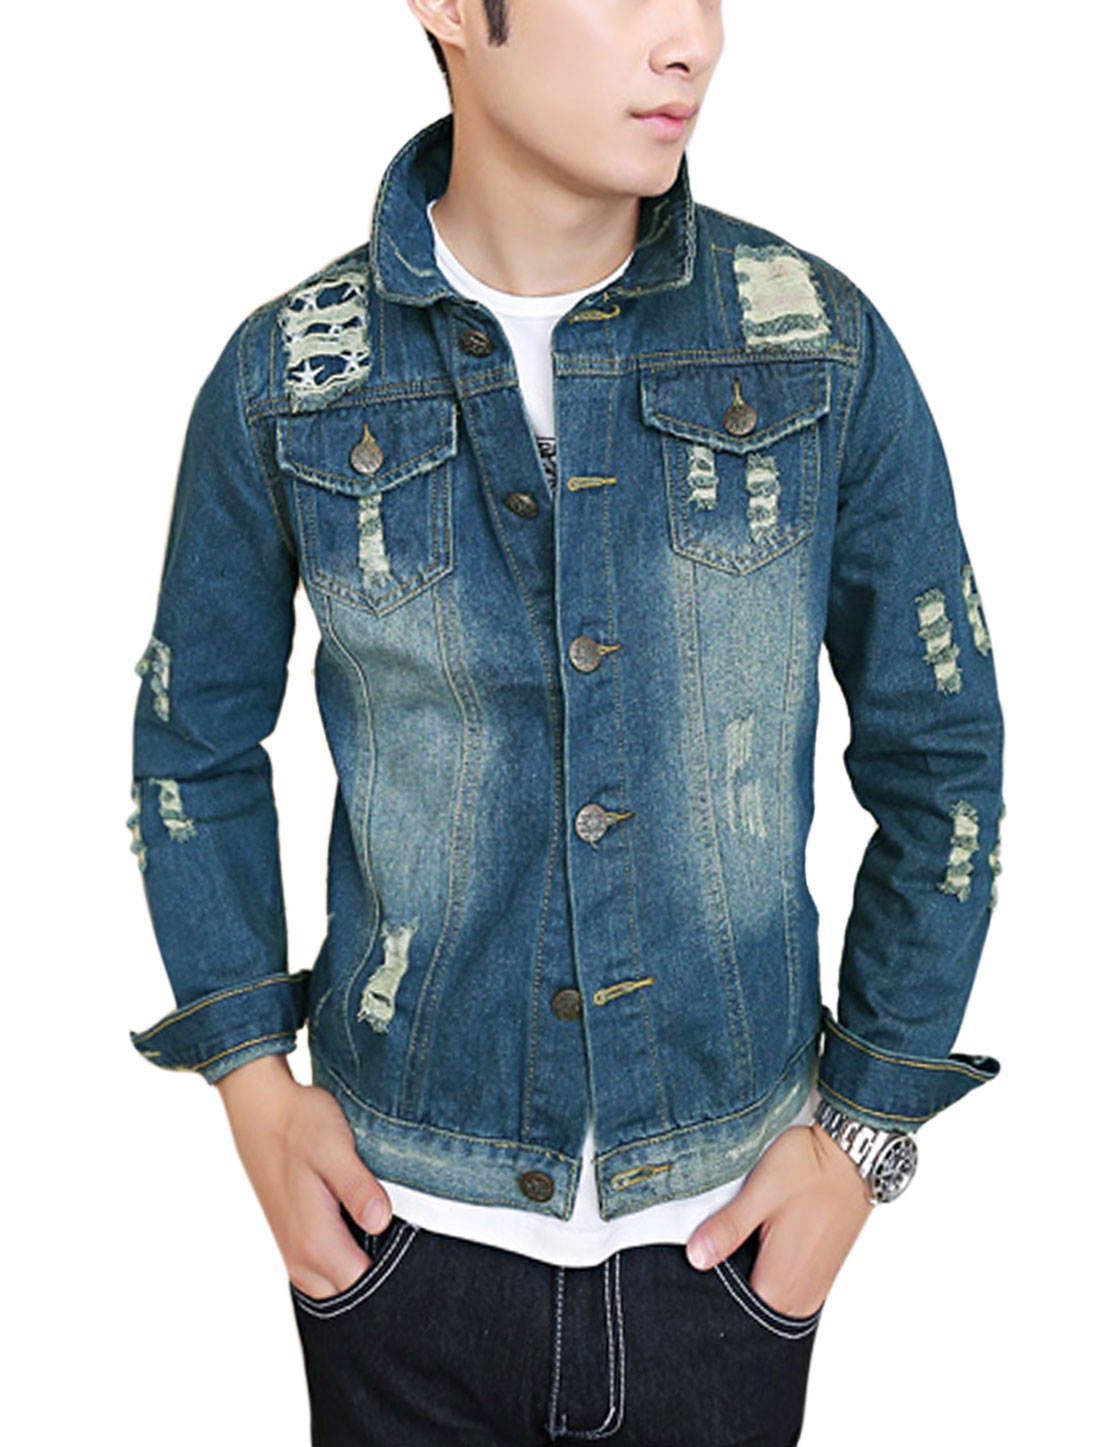 Men Point Collar Signle Breasted Destryed Design Casual Jean Jacket Dark Blue M